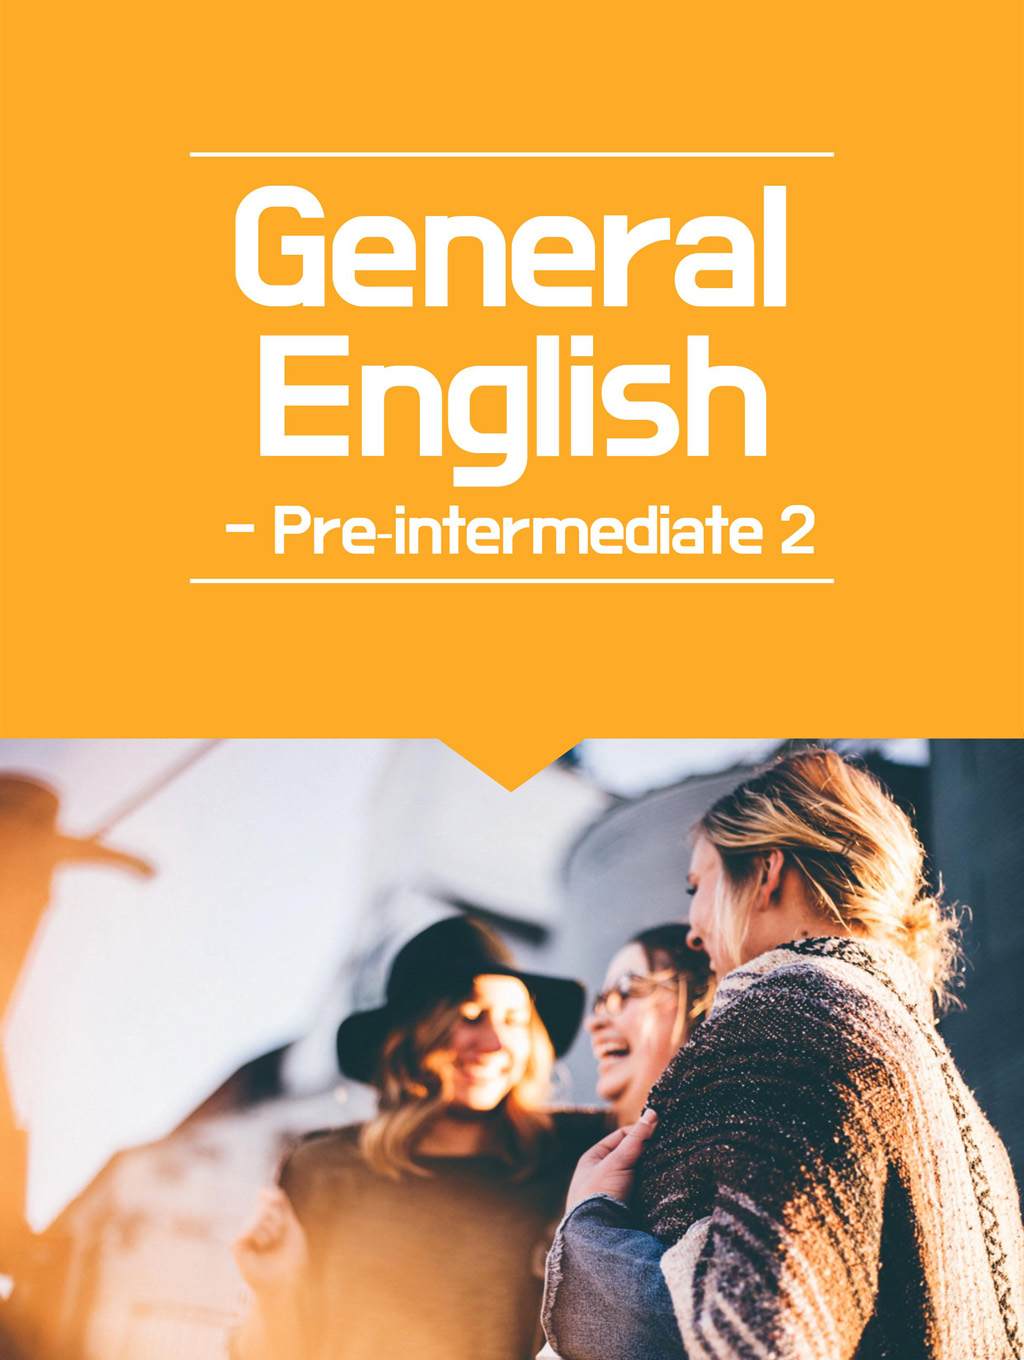 General English - Pre-intermediate 2